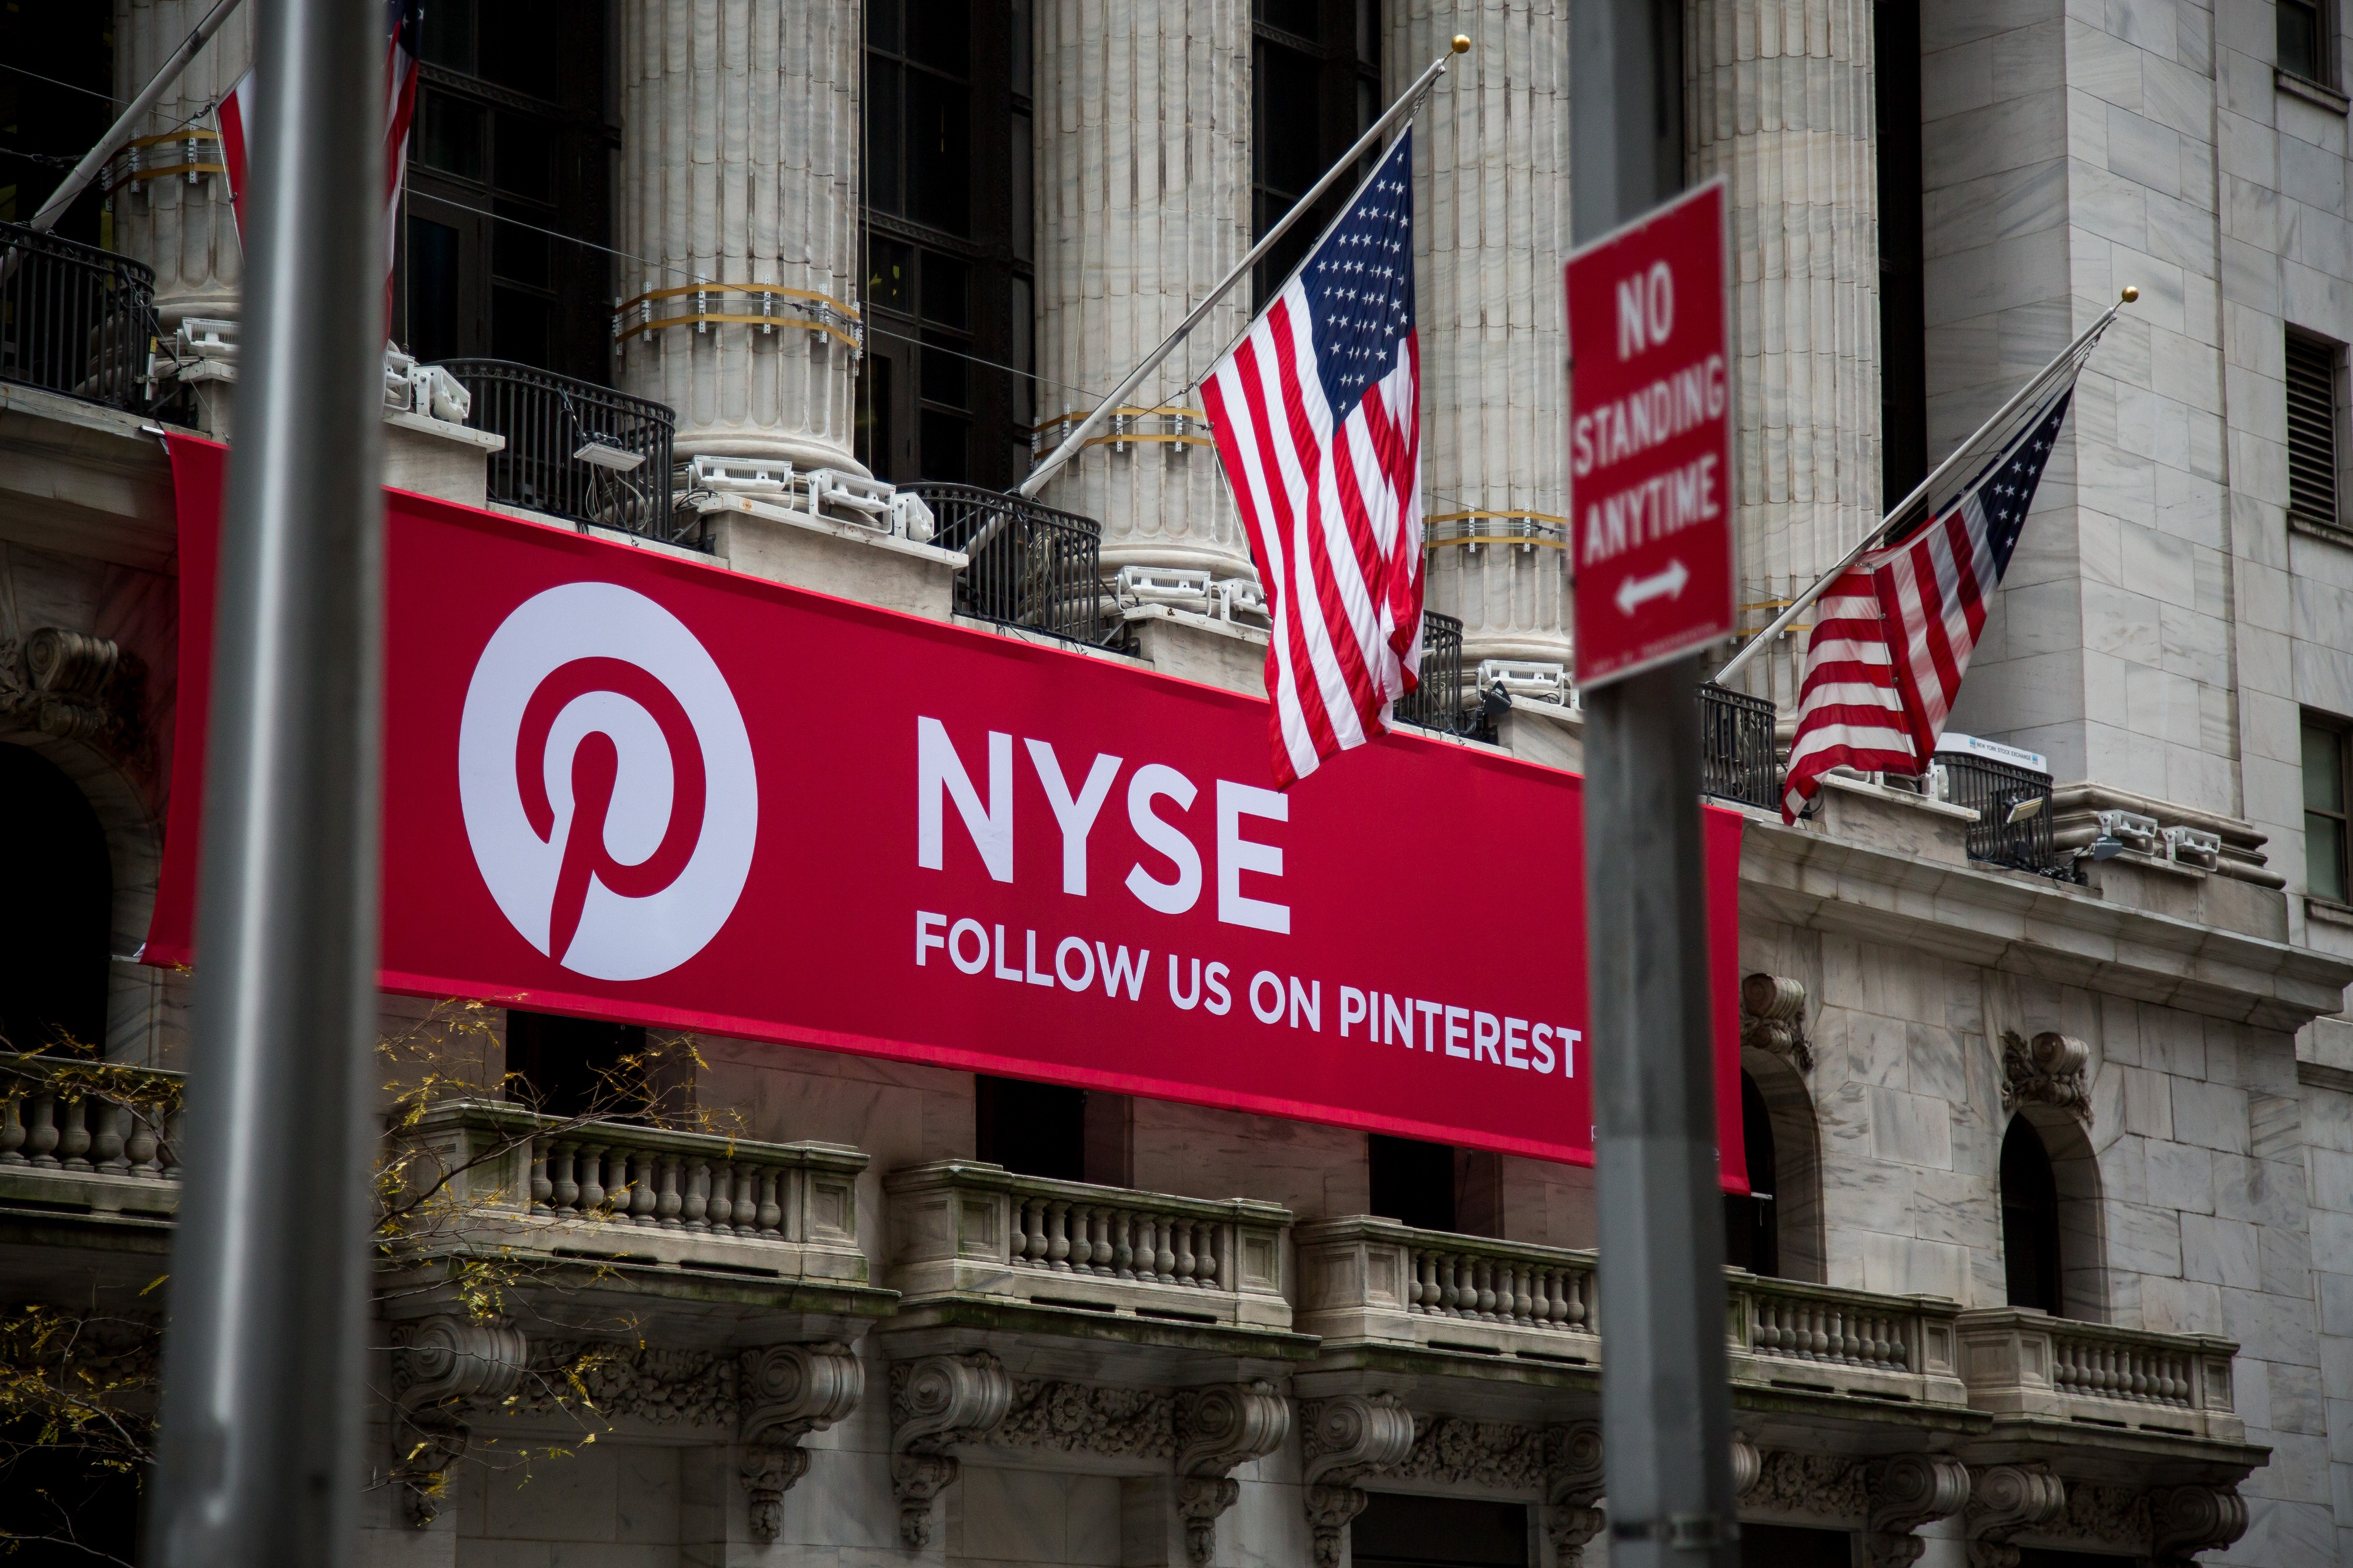 how does an ipo work, ipo, what is an ipo, medium wall street, wall street publication, ipo explanation, medium articles